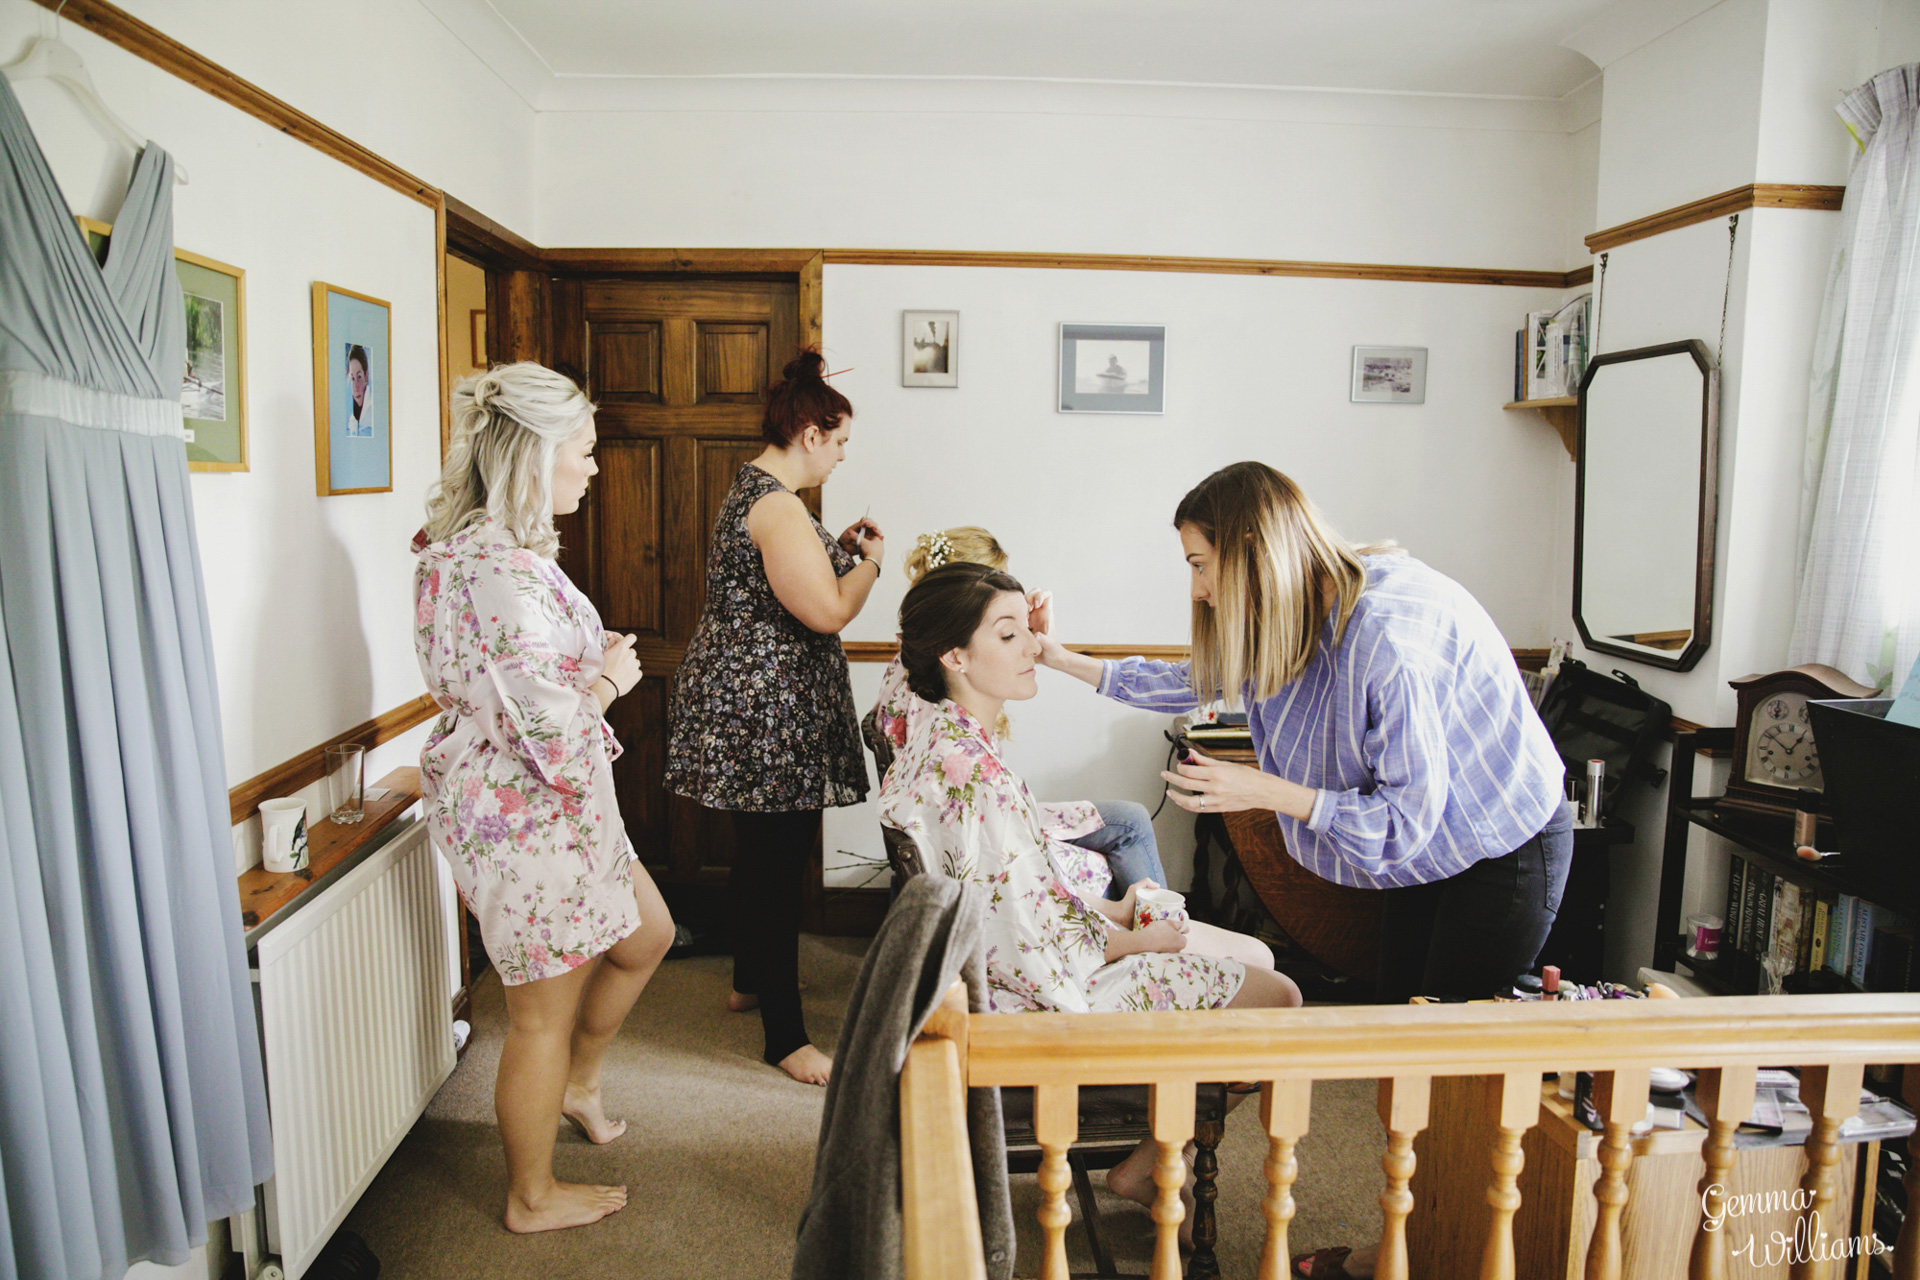 HaybarnWedding_GemmaWilliamsPhoto009.jpg